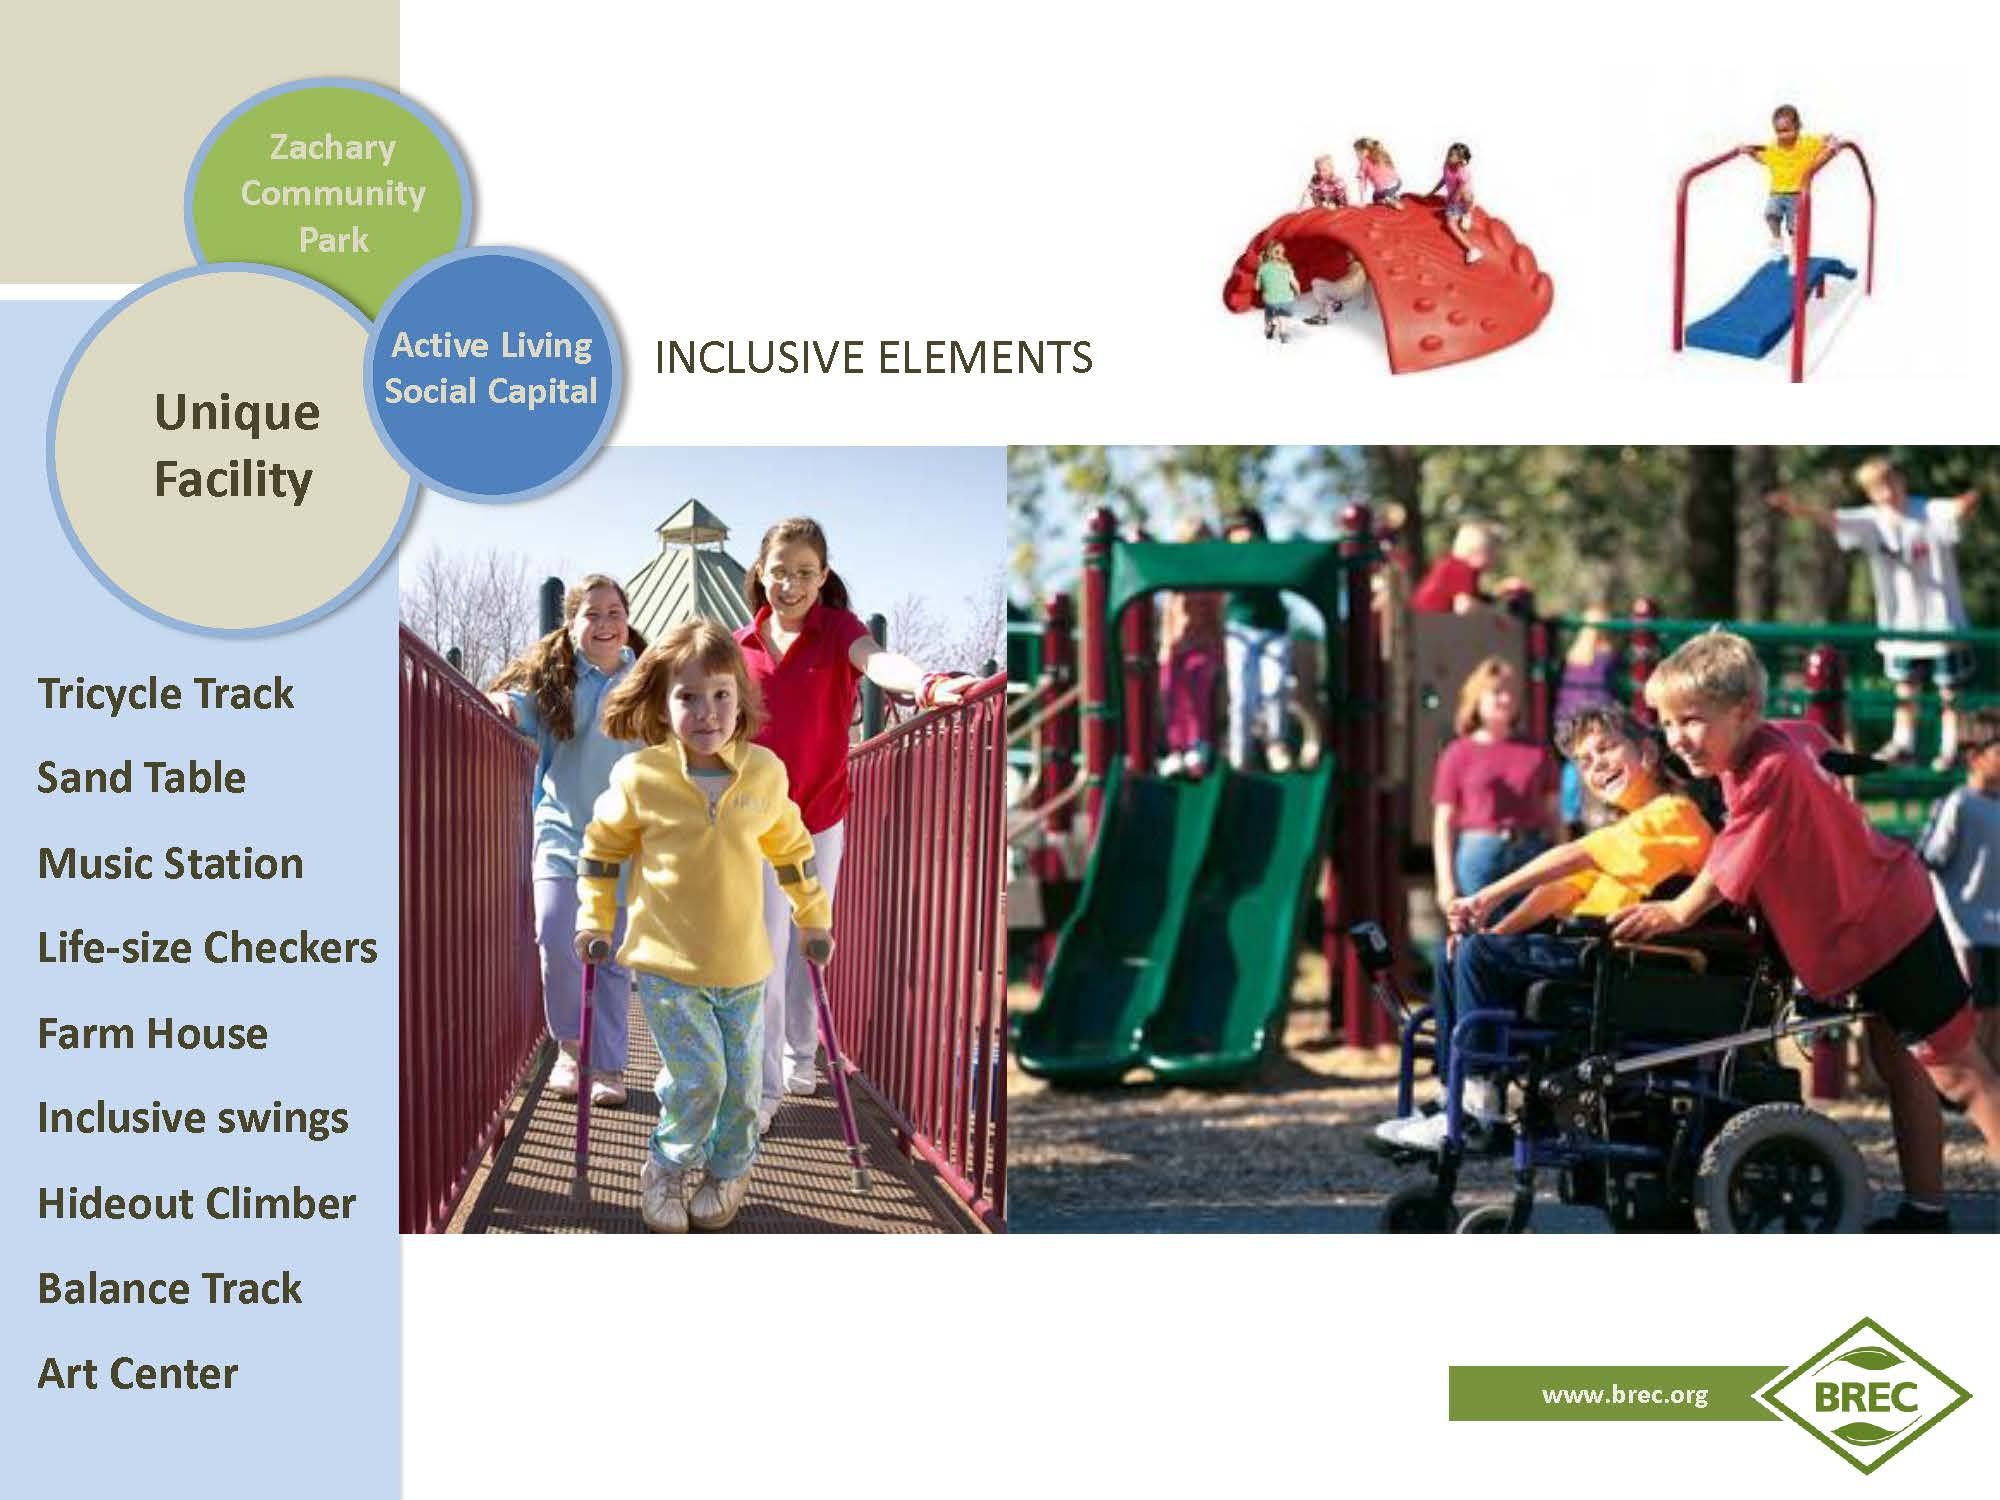 Zachary_PlaygroundPhaseII_Naming Opportunities_Page_02.jpg